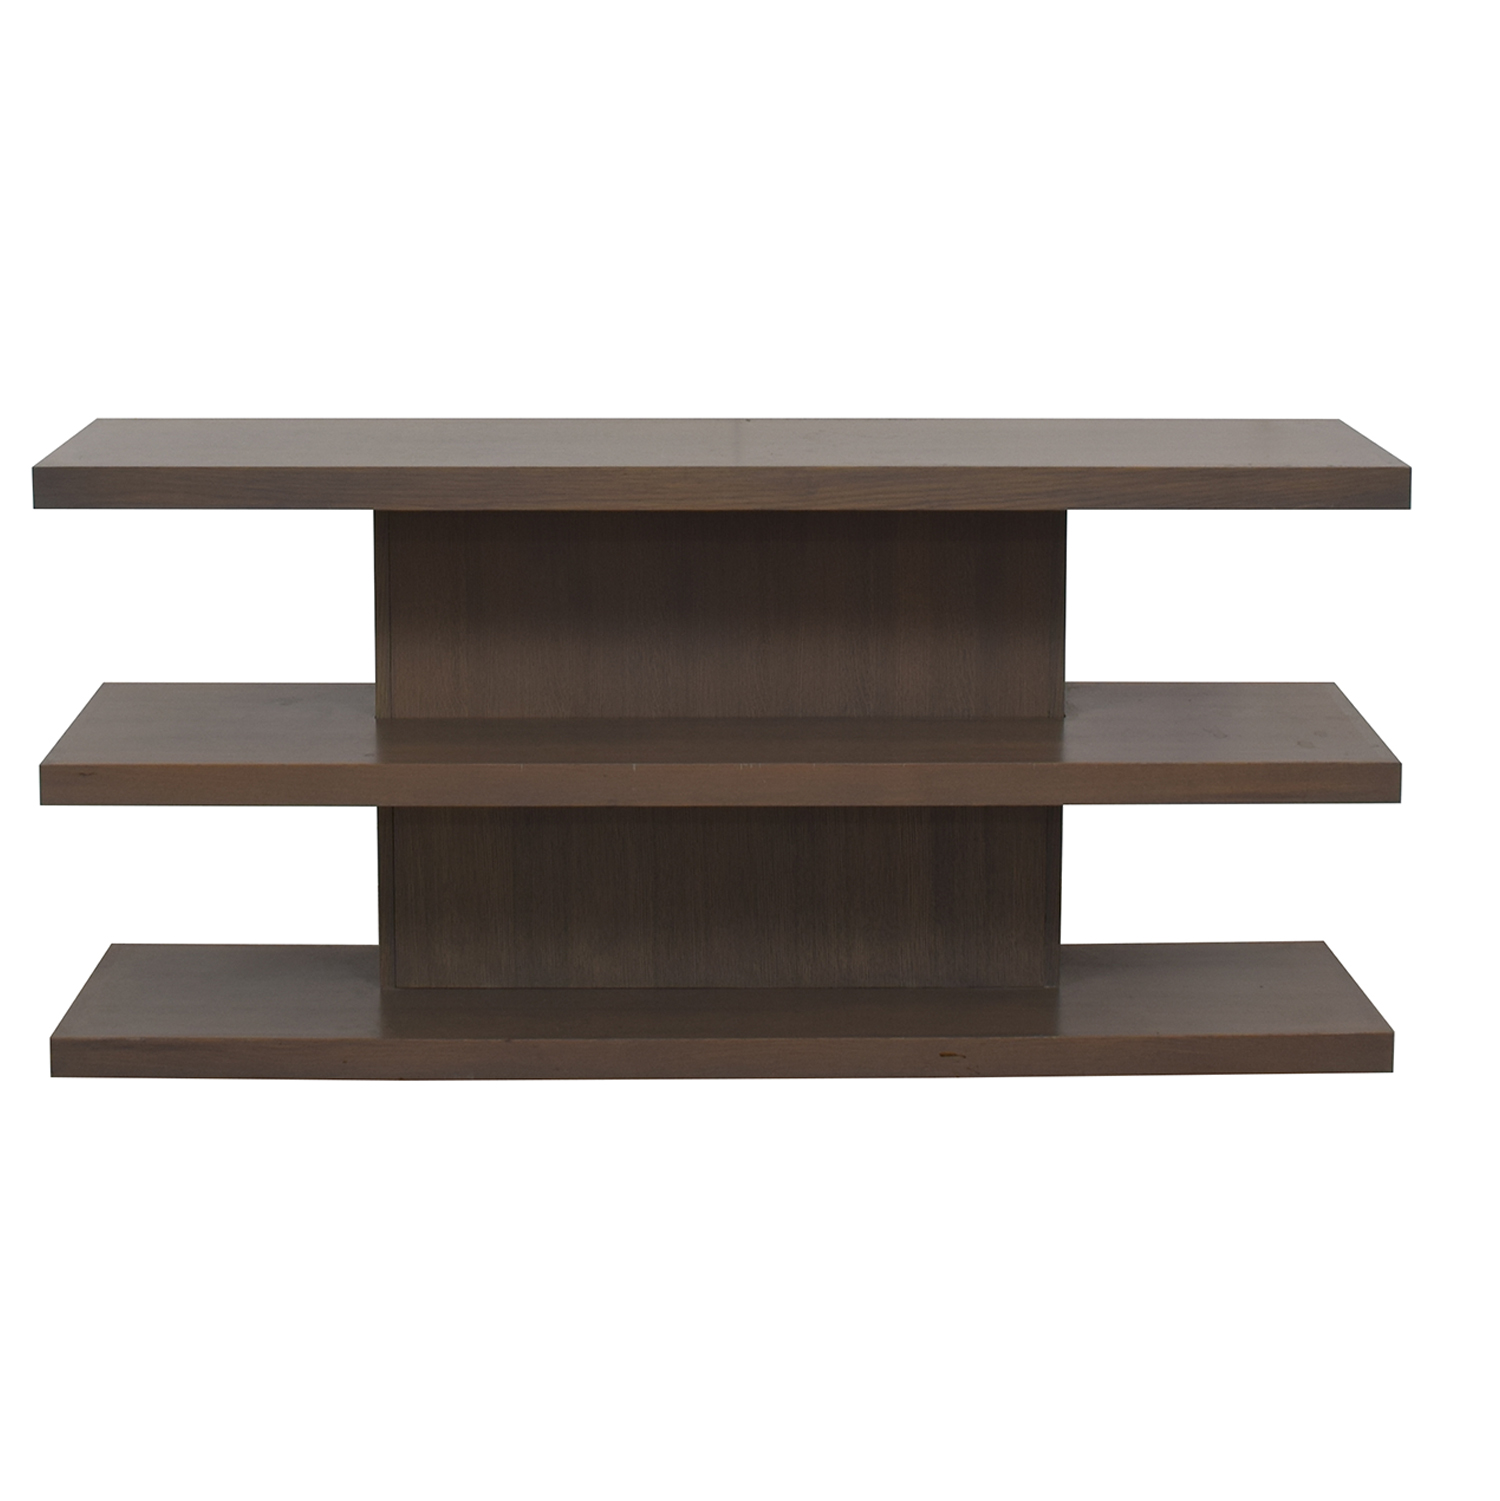 81 Off Aa Laun Aa Laun Grey Driftwood Tv Stand Or Bookcase Storage